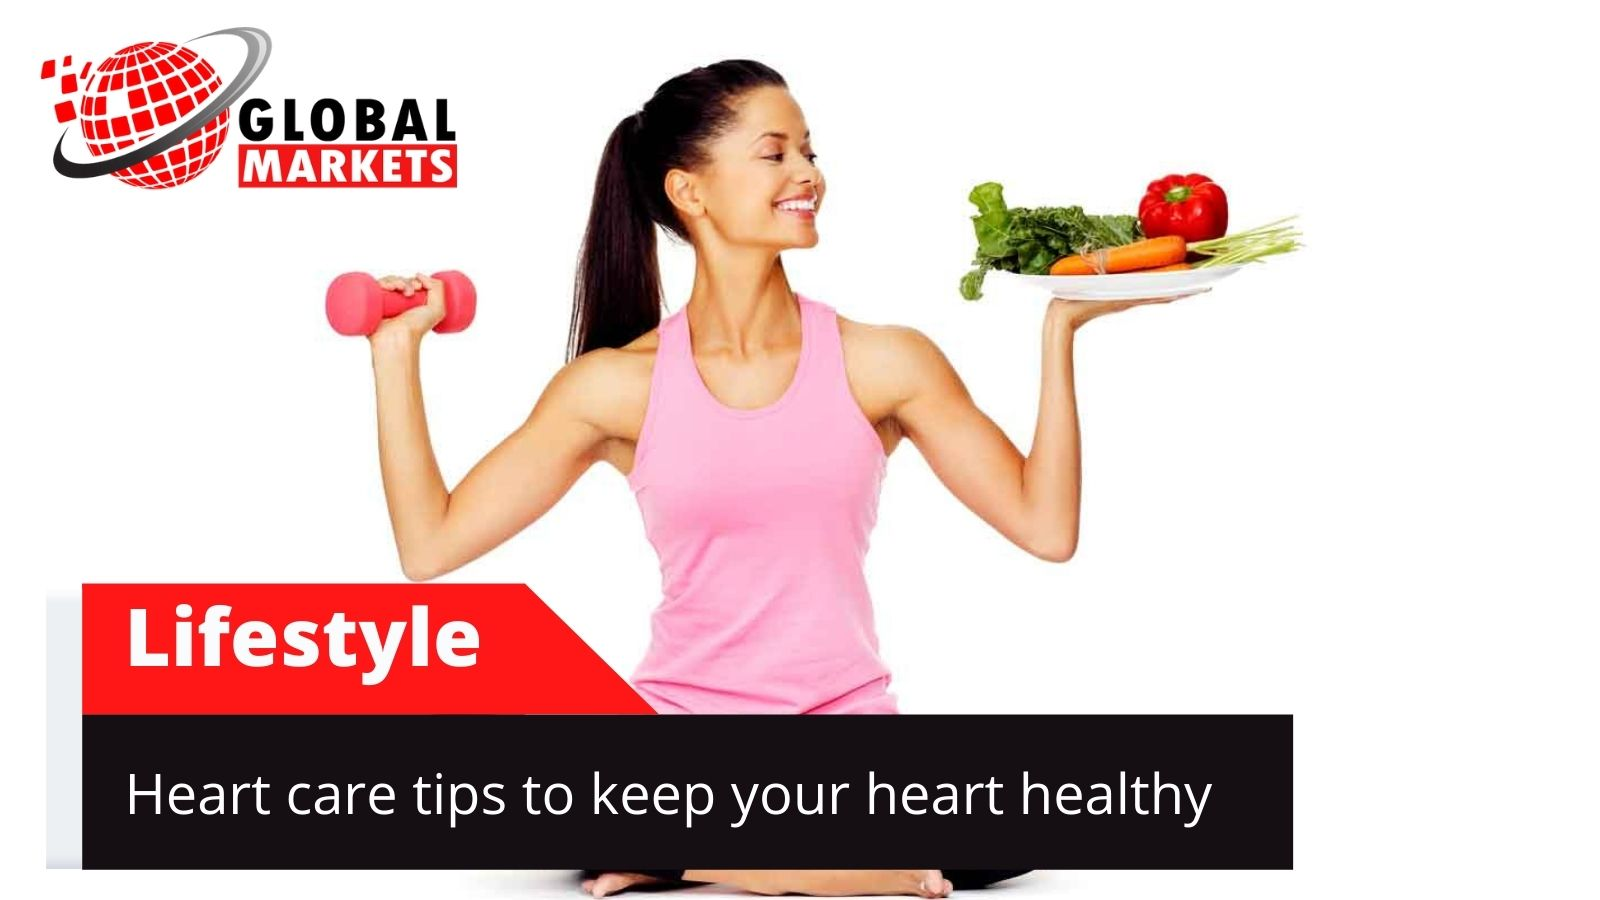 Heart care tips to keep your heart healthy